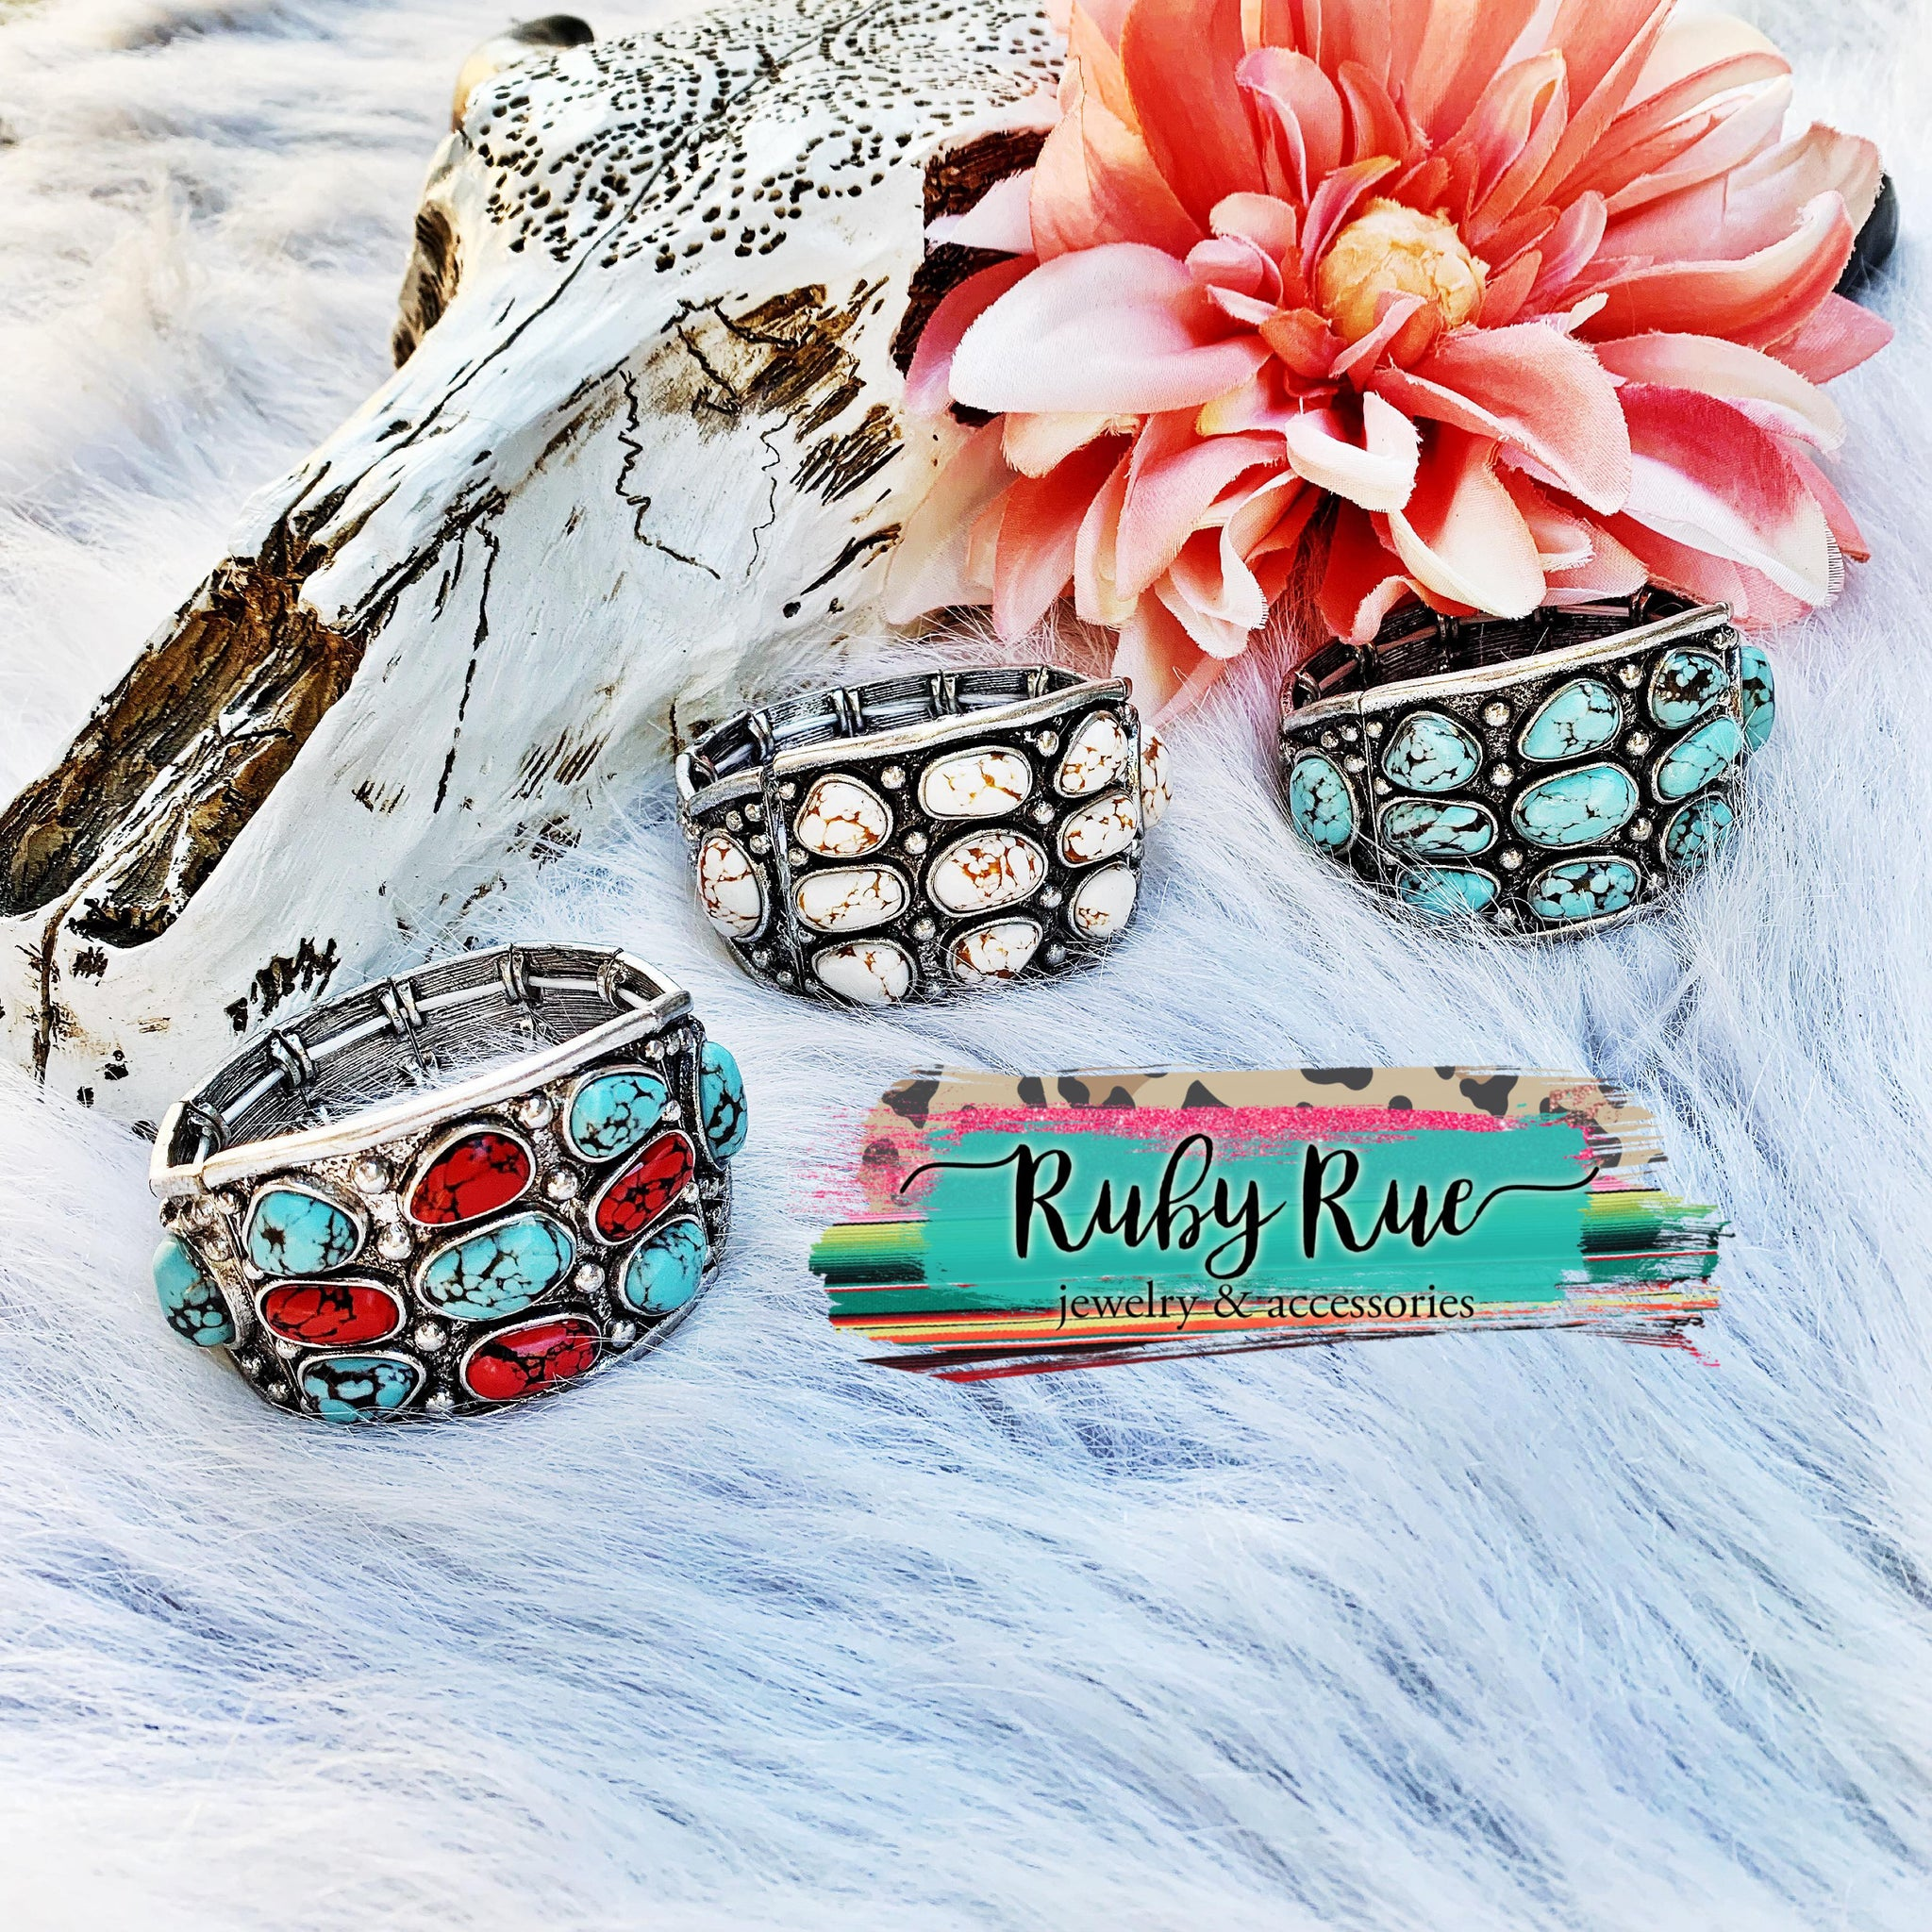 Western Stretch Bracelet - Ruby Rue Jewelry & Accessories